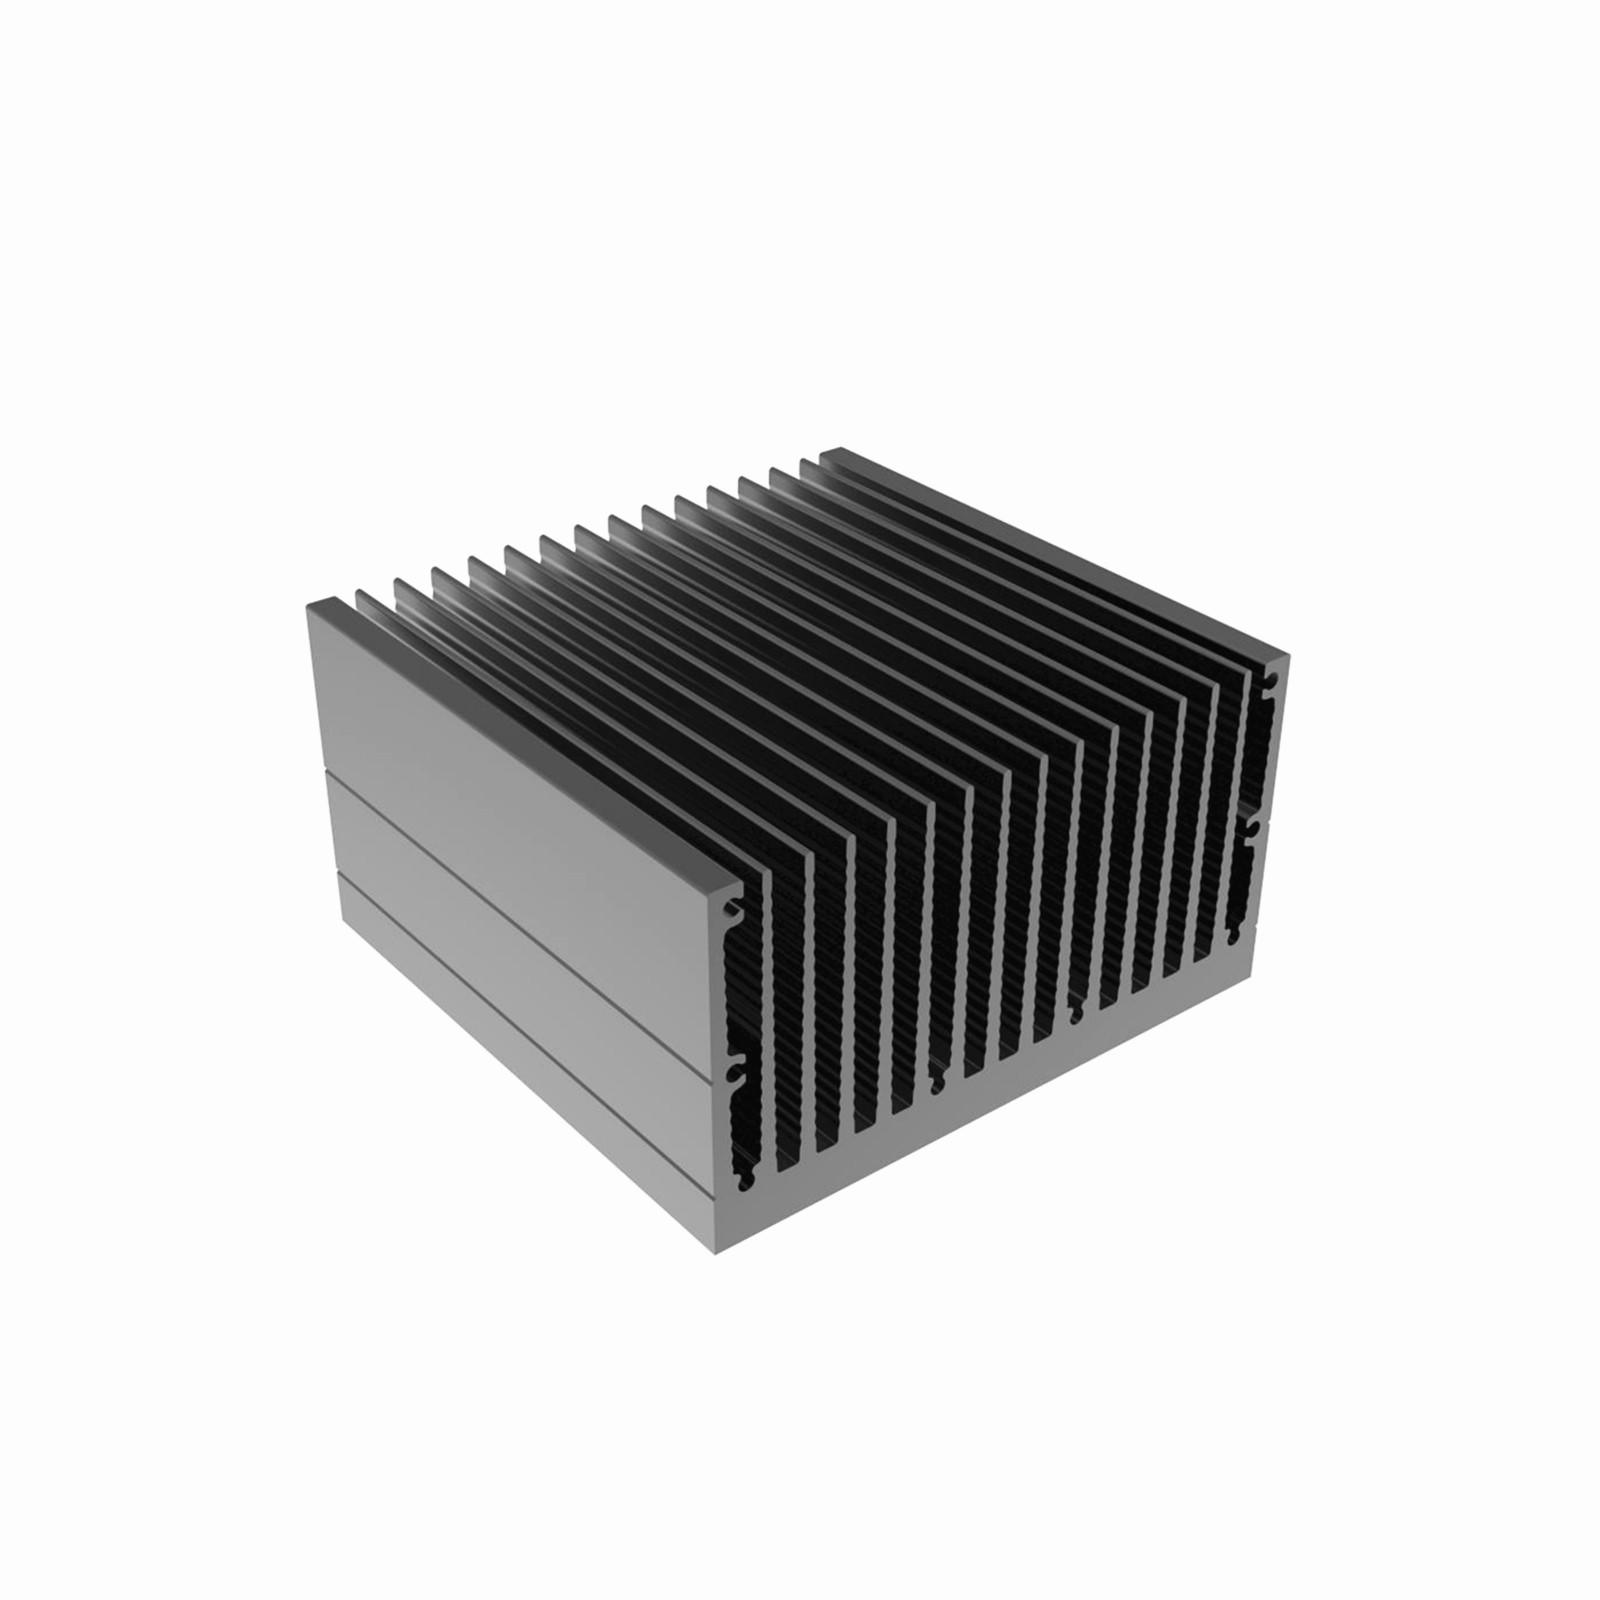 led metal heat sink design for office Mingfa Tech